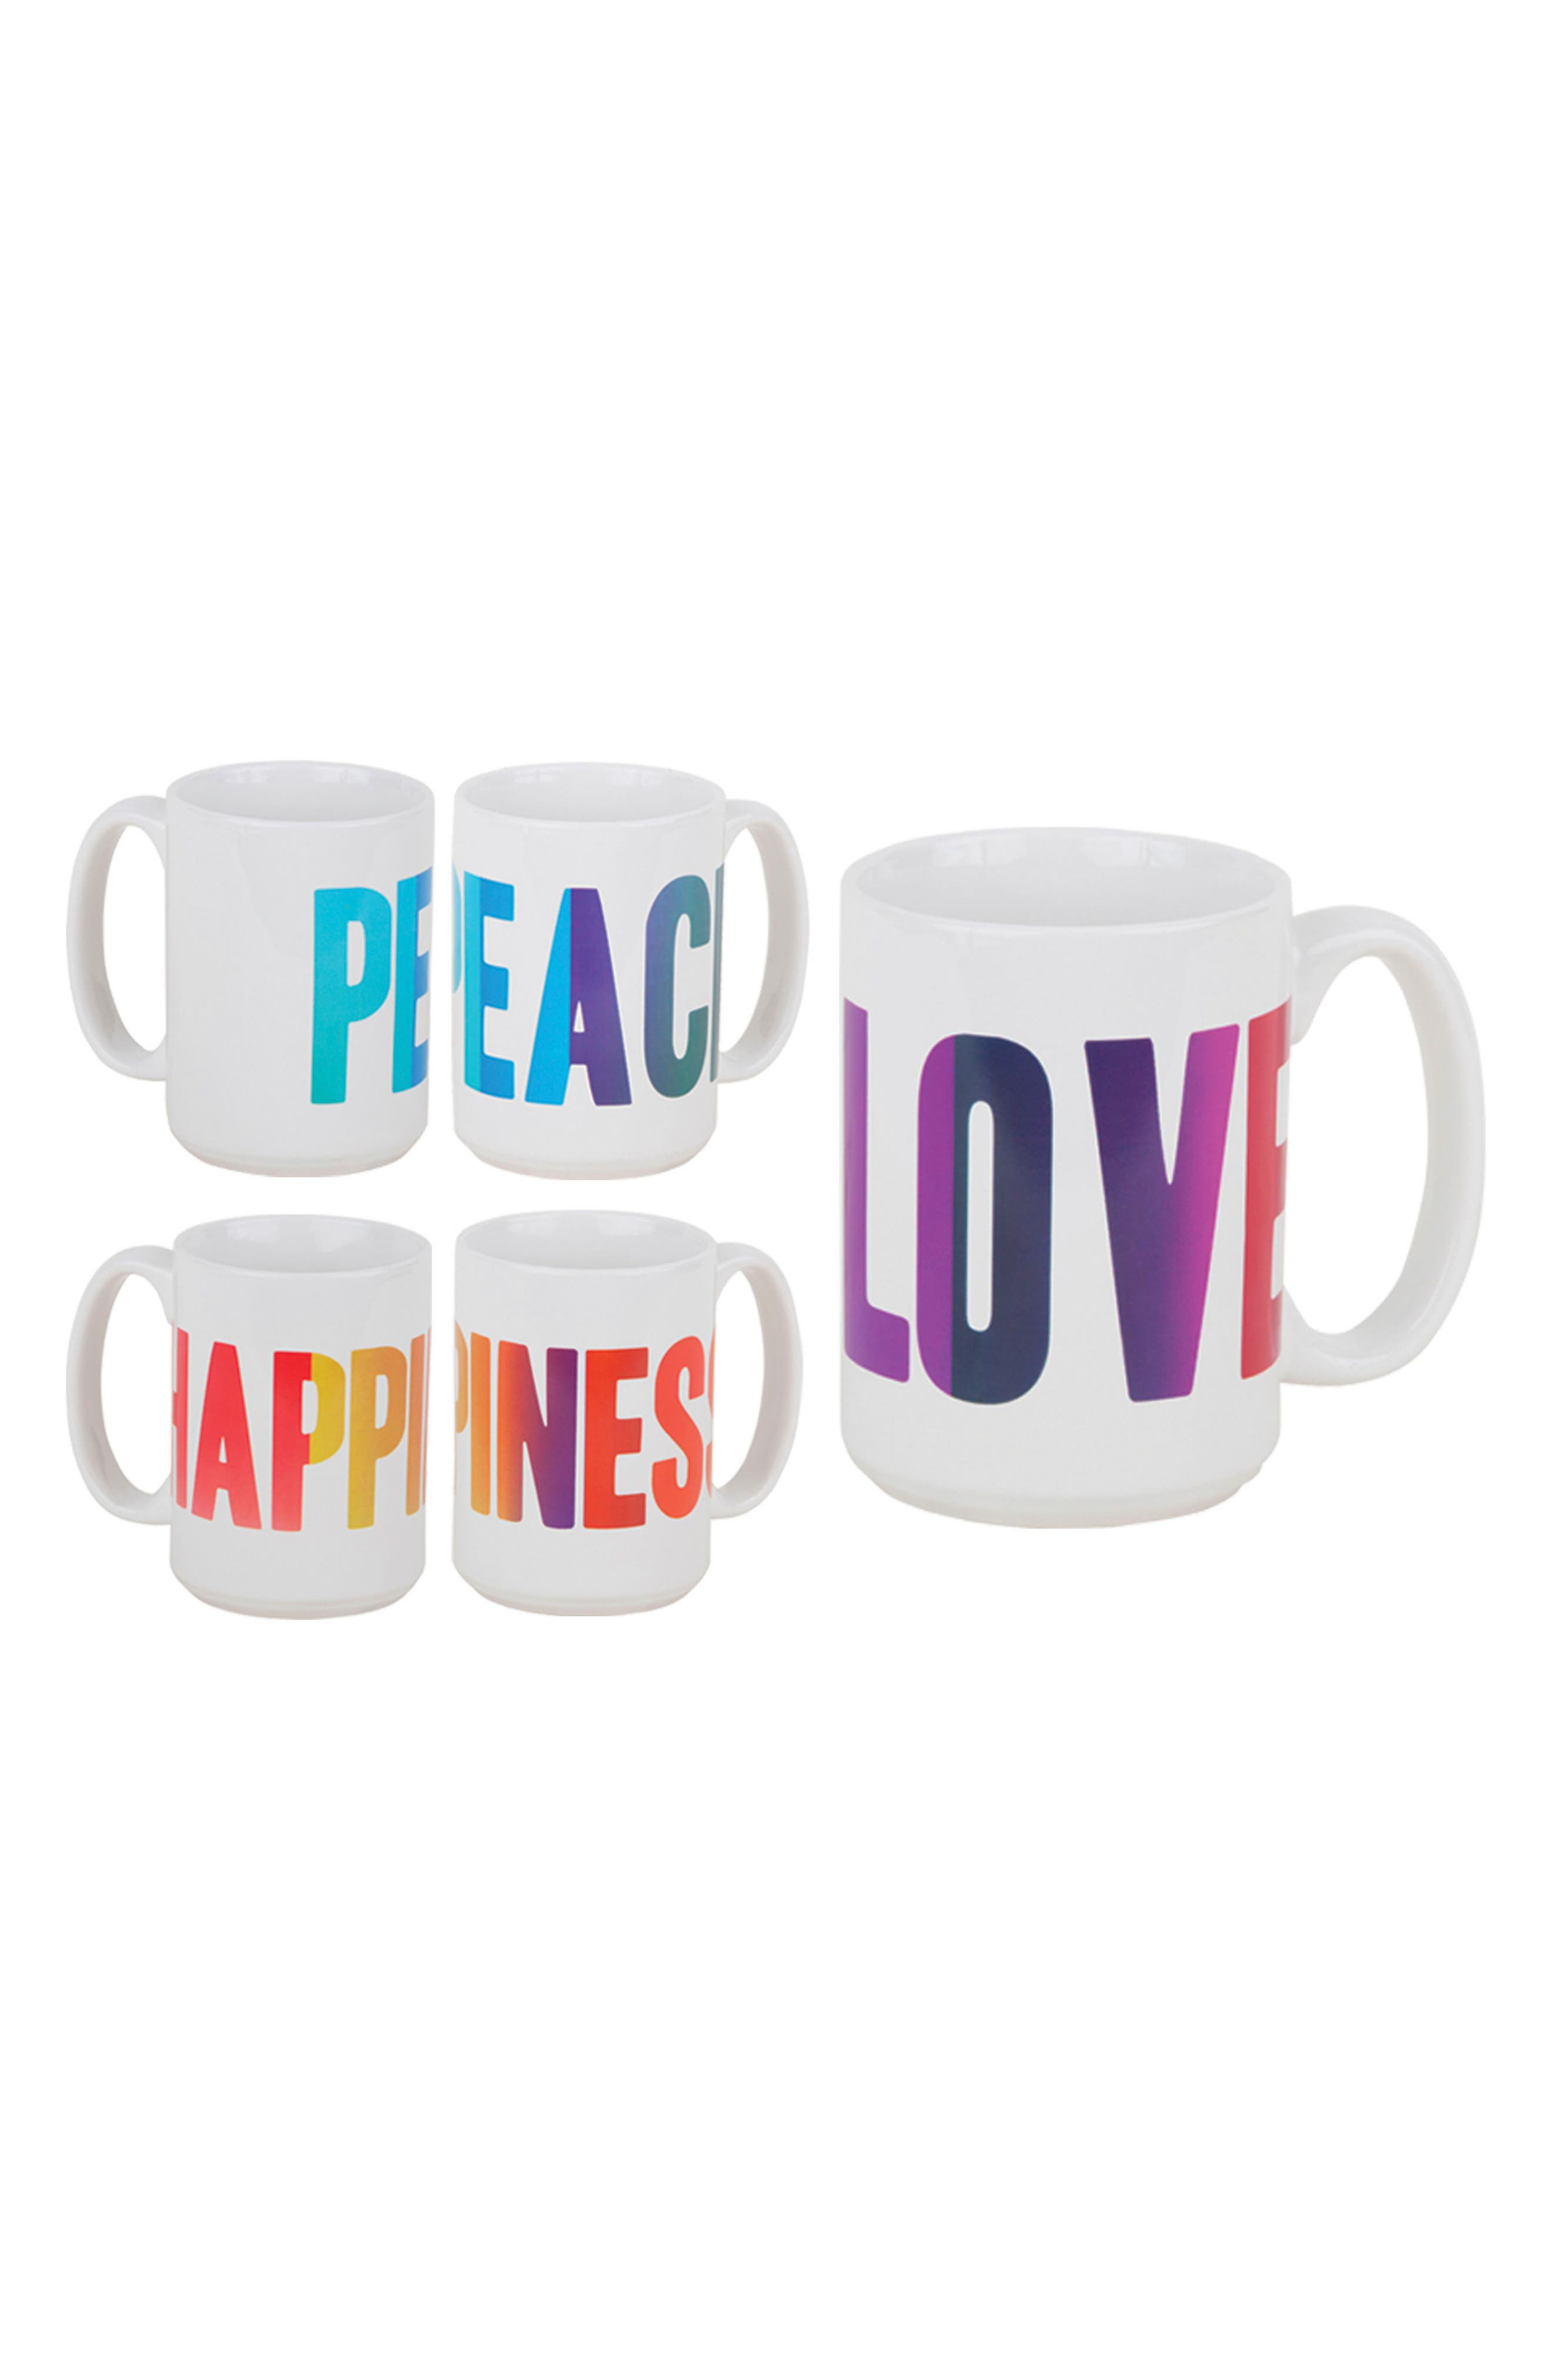 Peace Love Happiness Set of 3 Mugs,                             Main thumbnail 1, color,                             White/ Multi